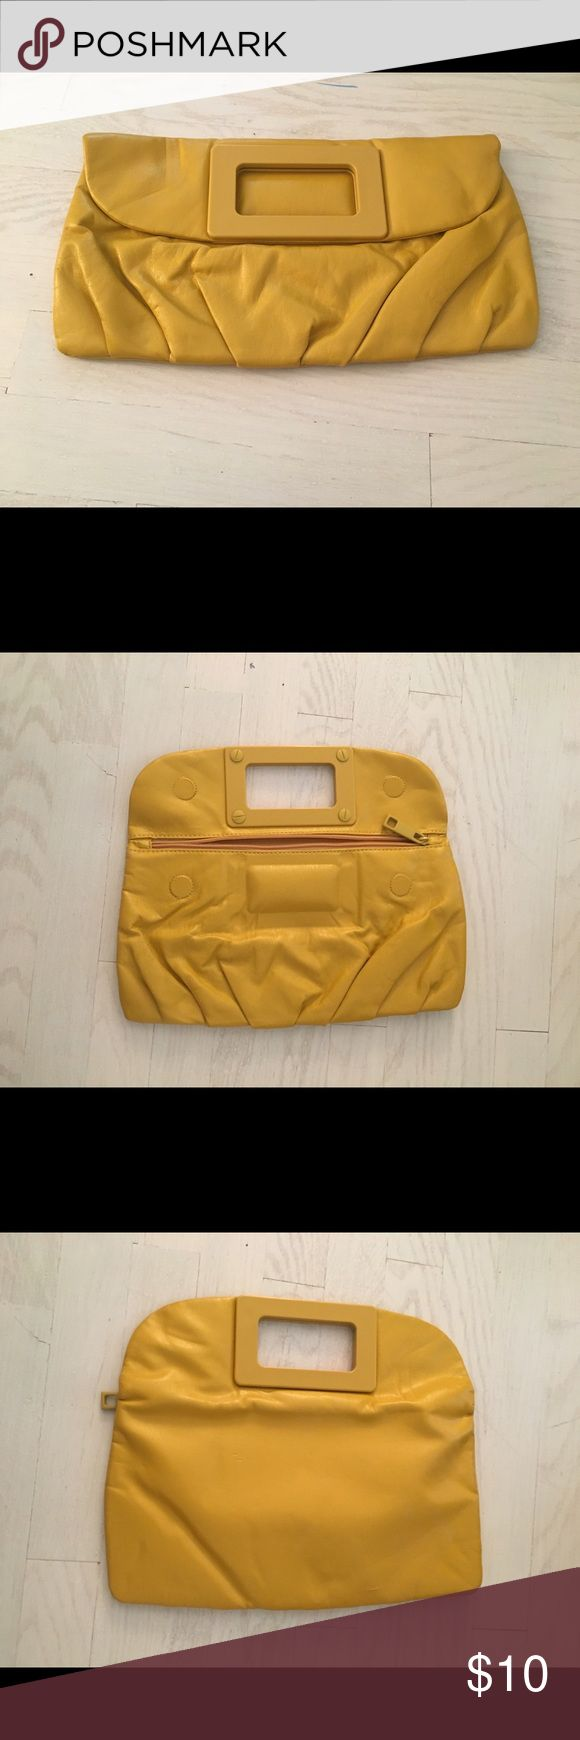 H&M Yellow Clutch Bag Adjustable, fold over yellow clutch with zipper opening and magnets to help close.  Inside zipper. H&M Bags Clutches & Wristlets